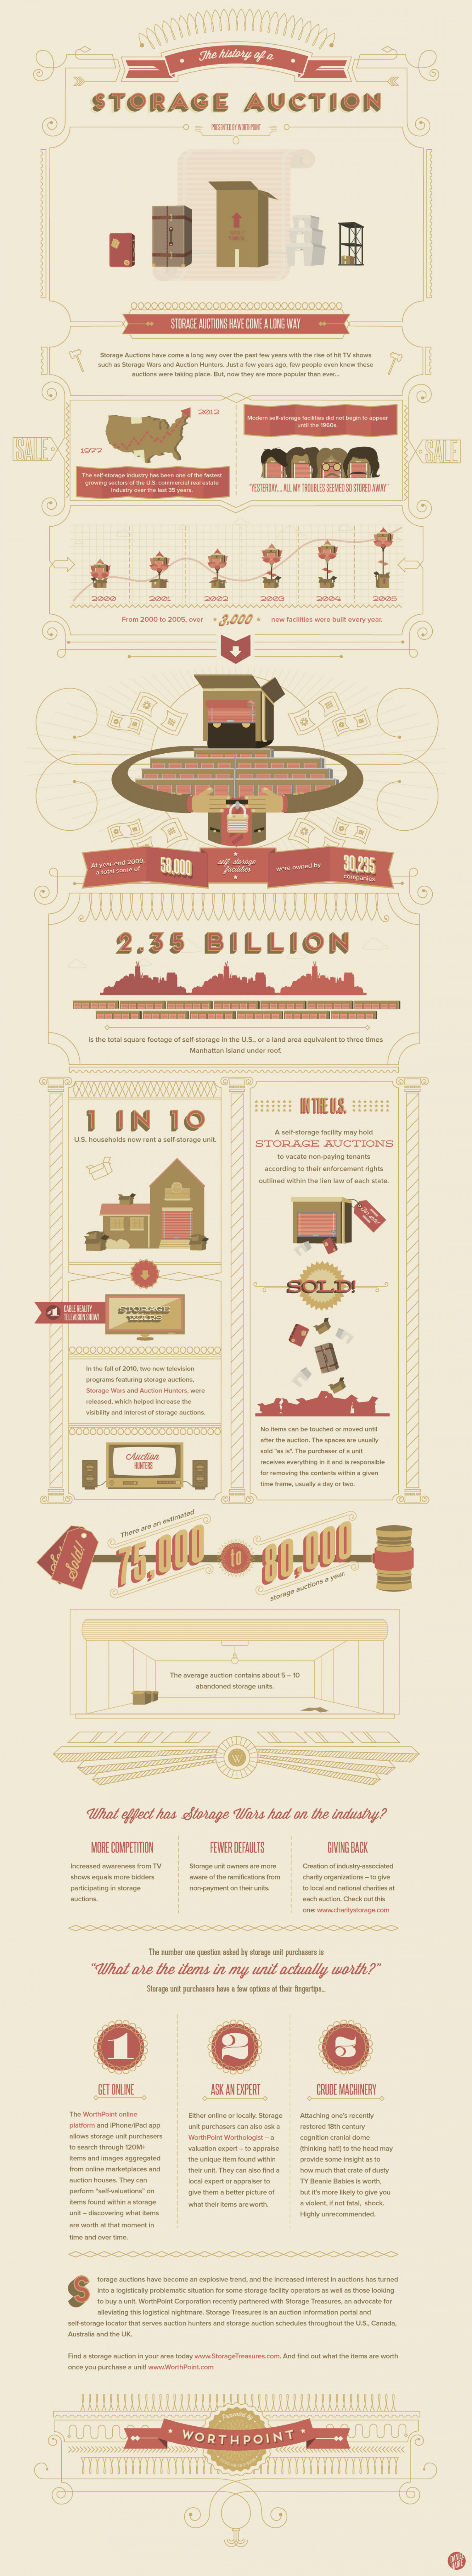 The History of a Storage Auction Infographic